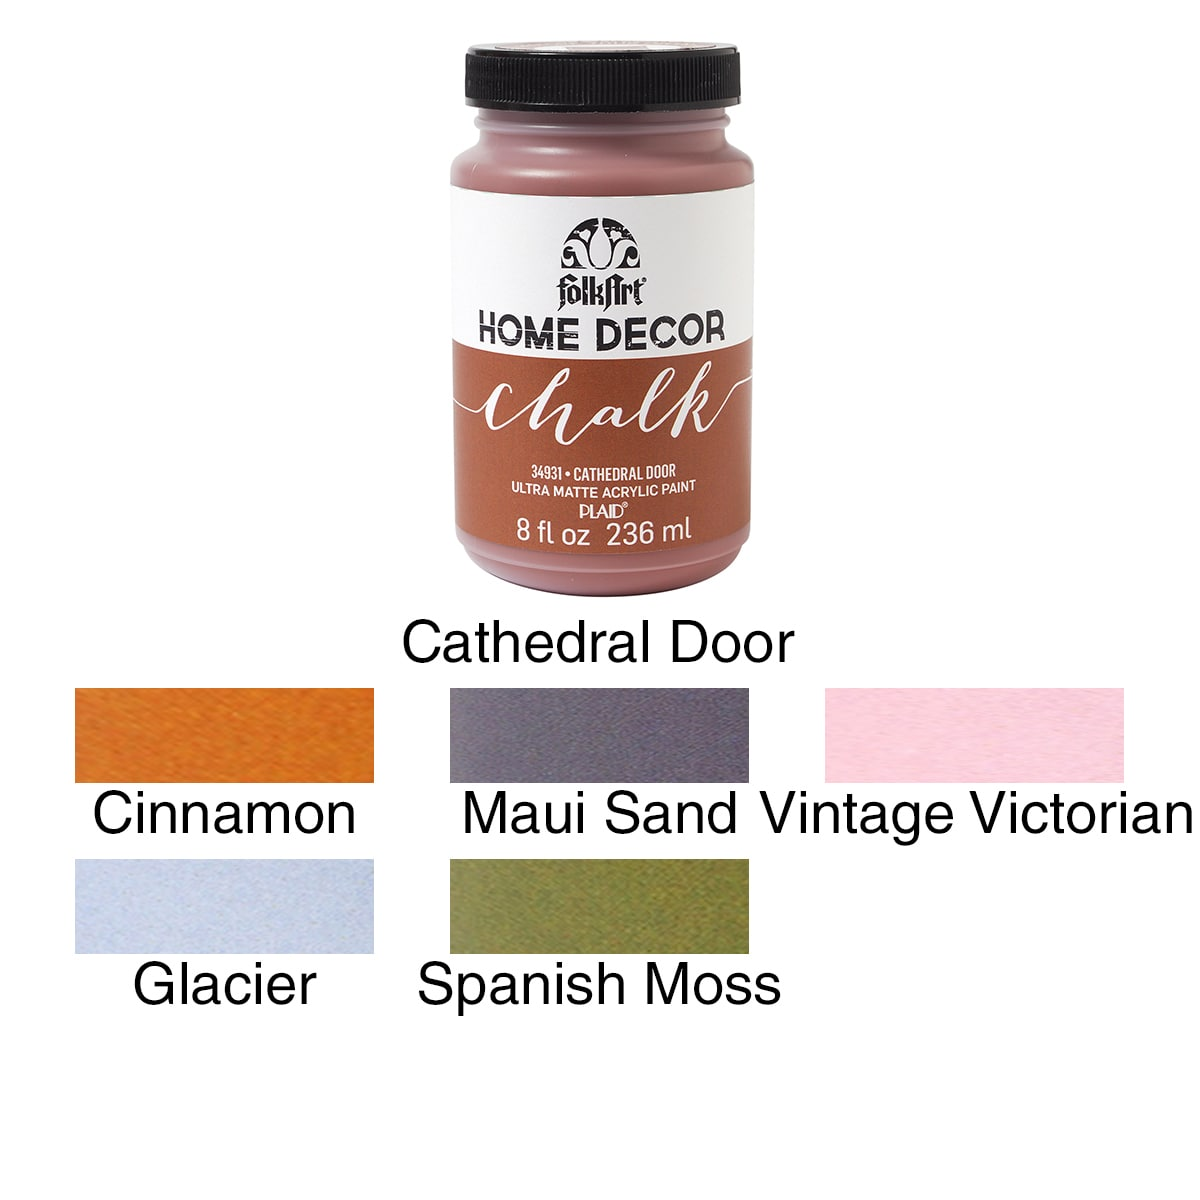 FolkArt Home Decor Chalk Paint, 8oz   Walmart.com